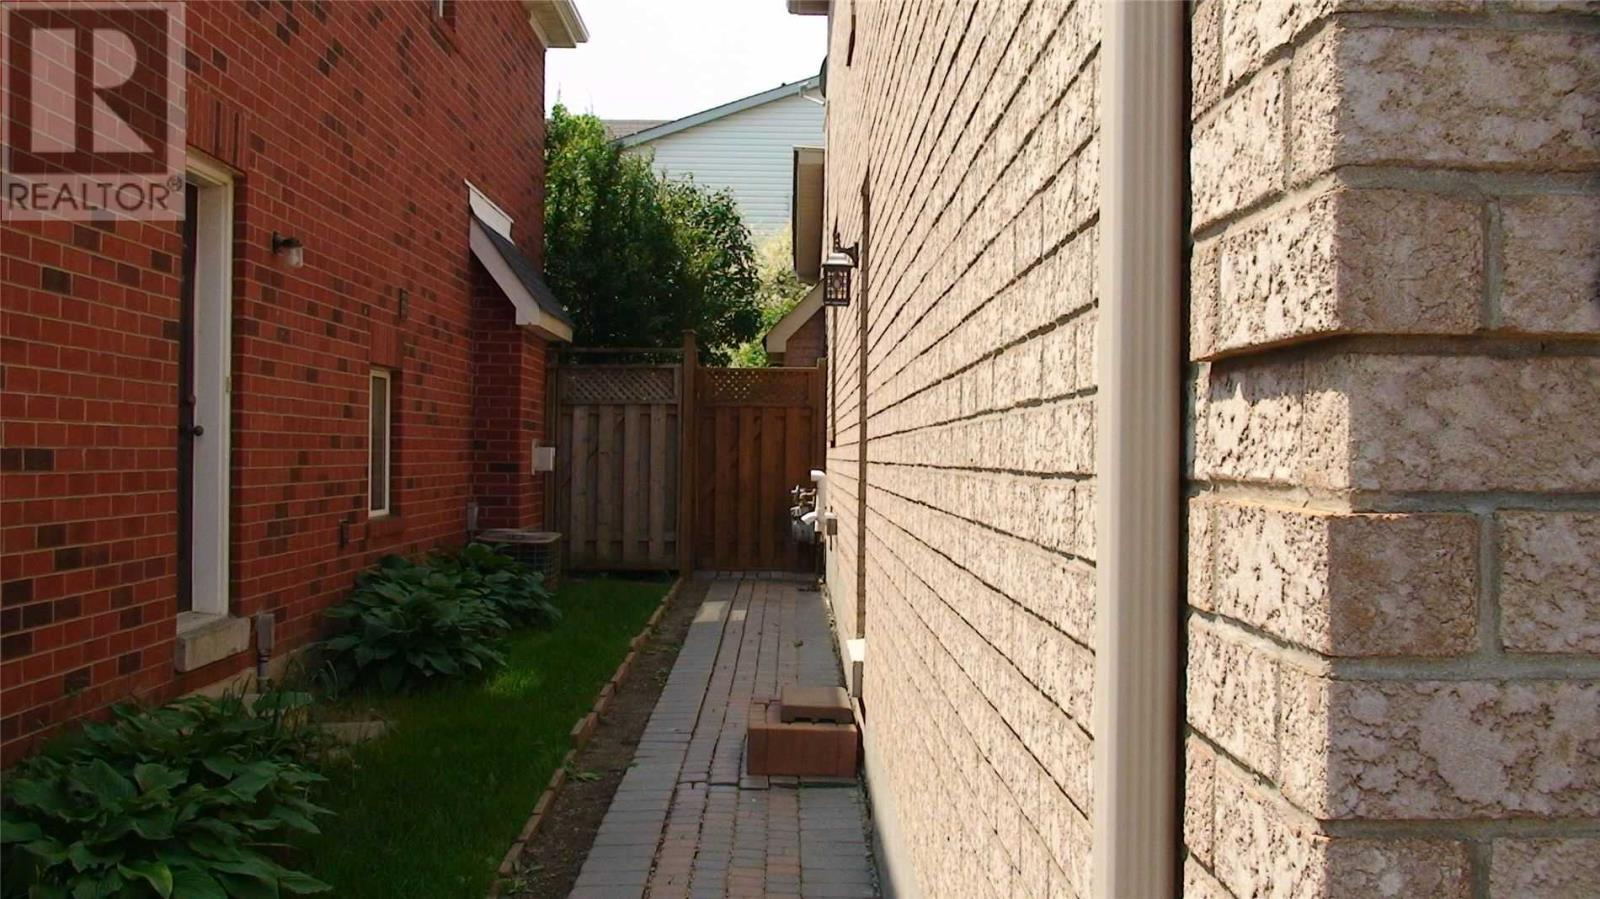 5316 Russell View Rd, Mississauga, Ontario  L5M 5V8 - Photo 7 - W4628616